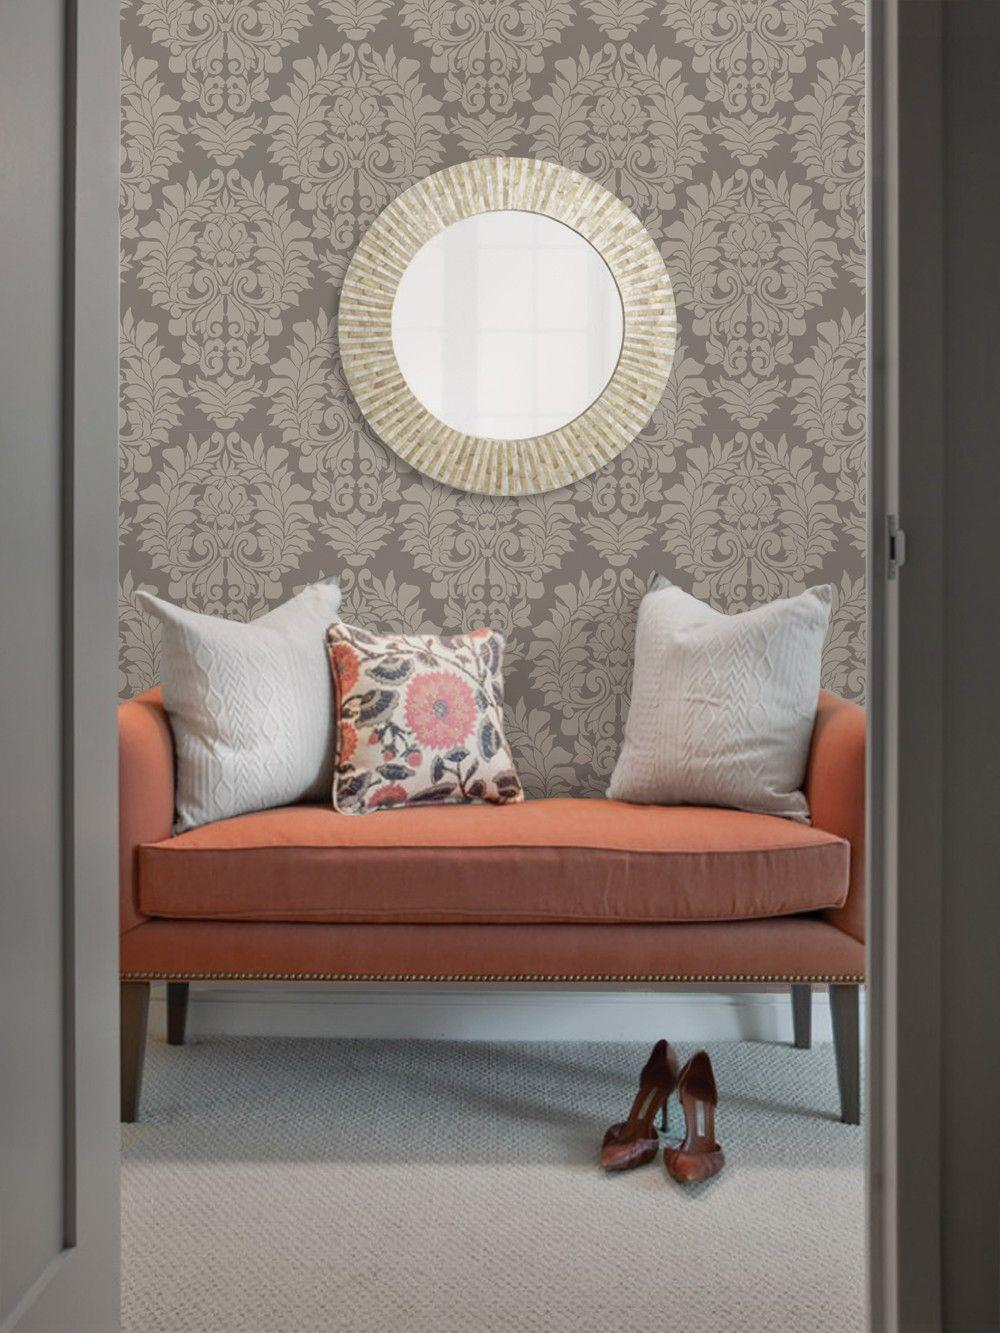 Wall fabric with arabesque